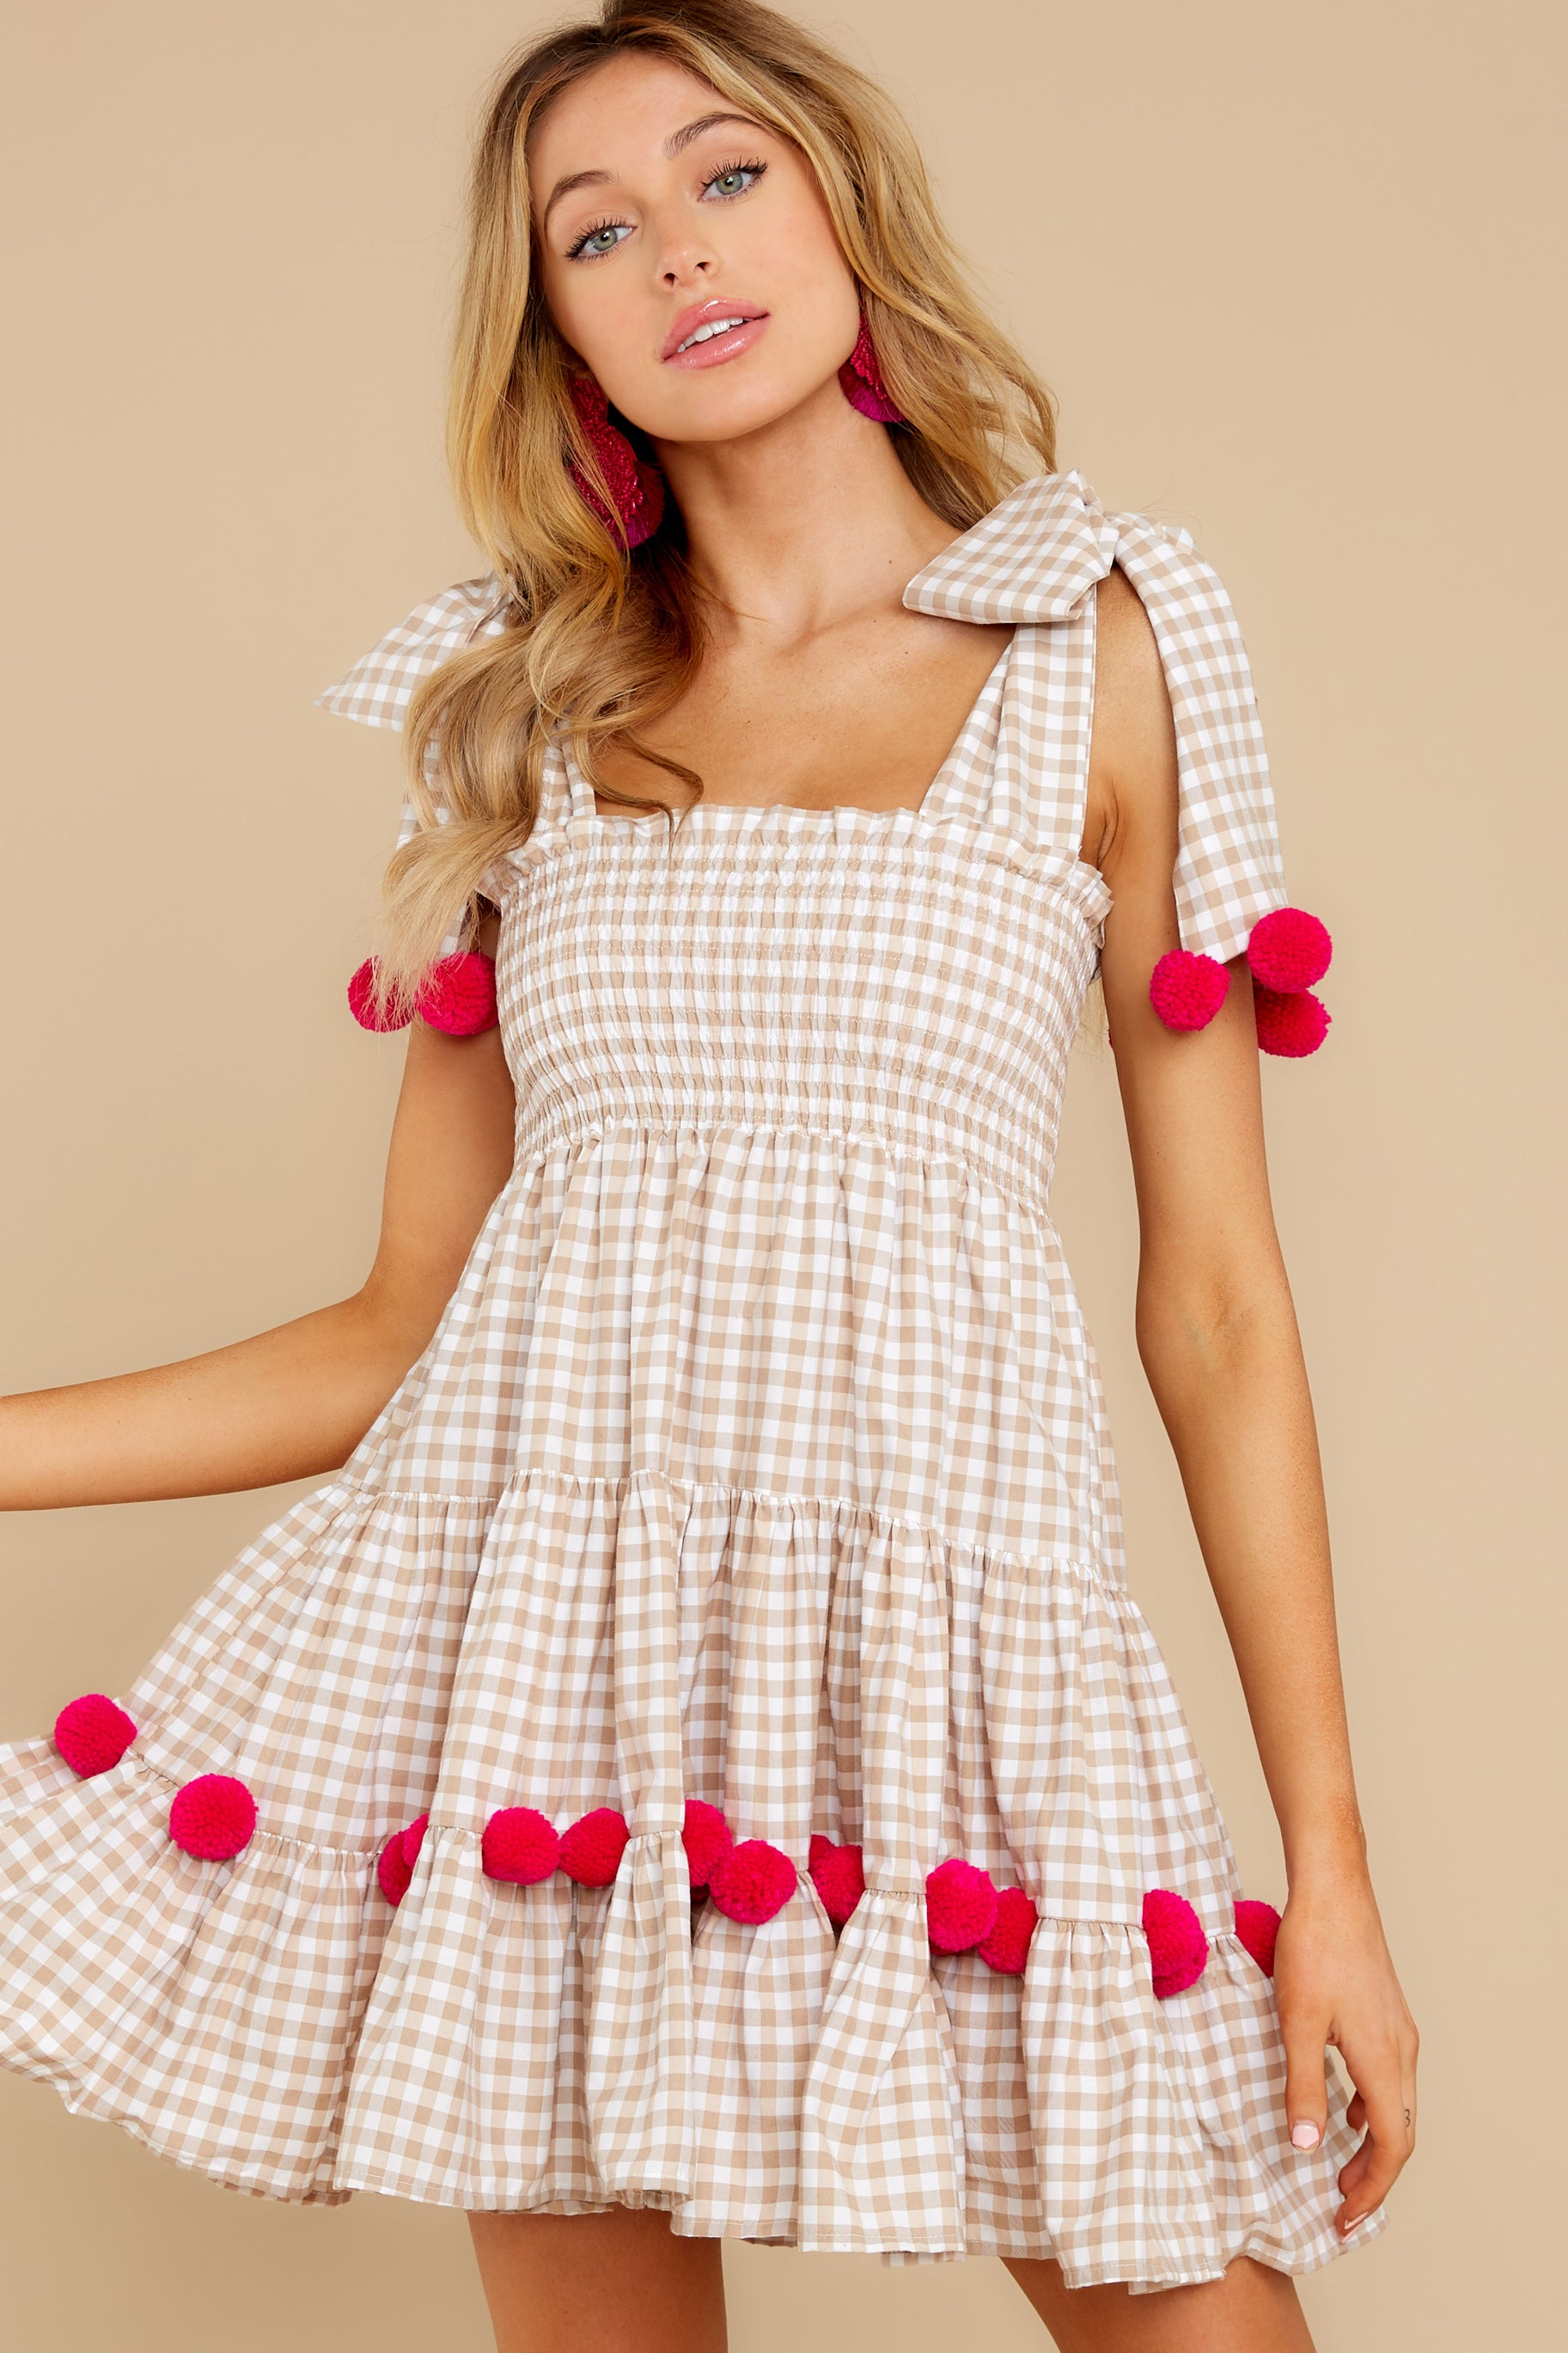 5 Pippa Beige Gingham Pom Pom Dress at reddress.com